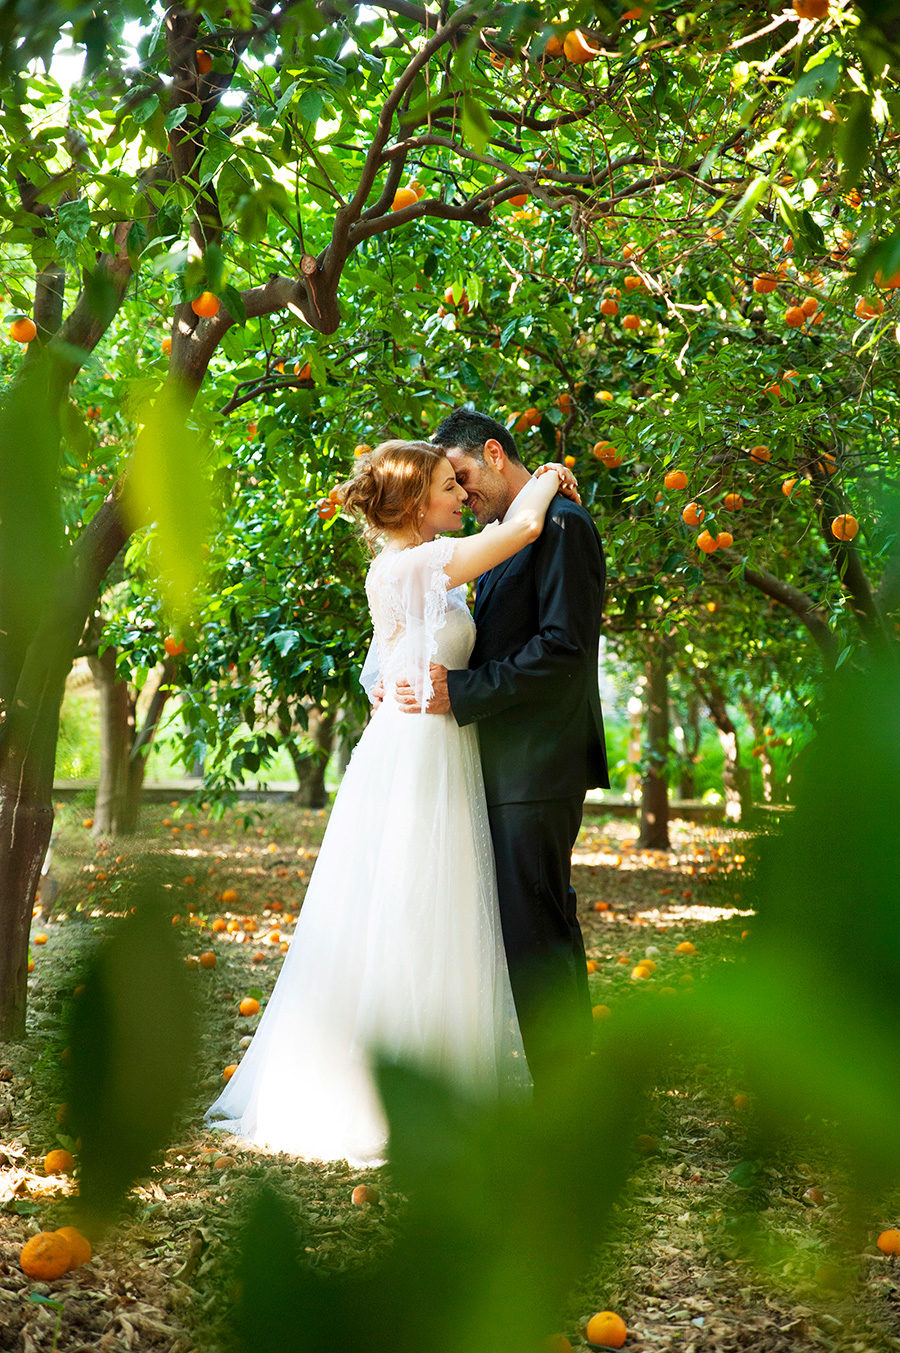 Play with the oranges. Kampos. Wedding Photoshooting. orange trees. Bride's and Groom's portrait. Riziko. greek wedding . Chios , Greece. greek island. Couple photoshooting. Love and married. Alepa Katerina . Layer Photography